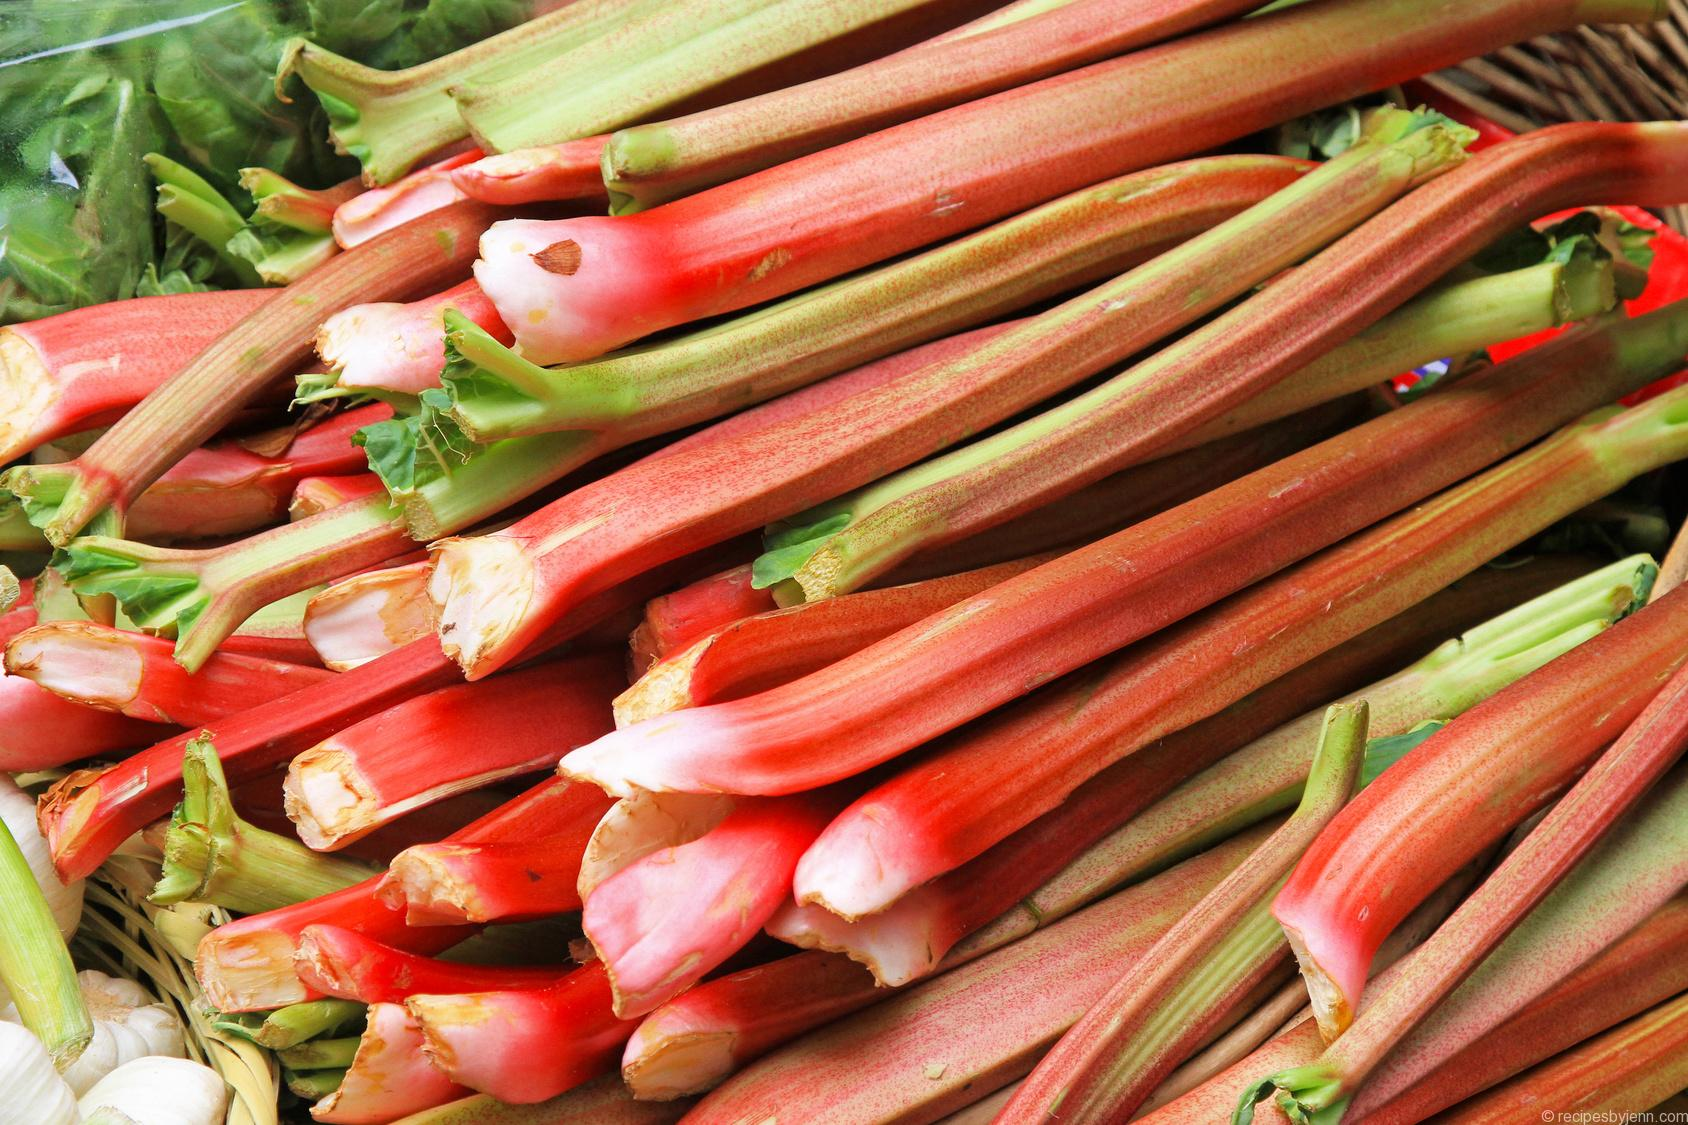 Big pile of organically grown rhubarb vegetable